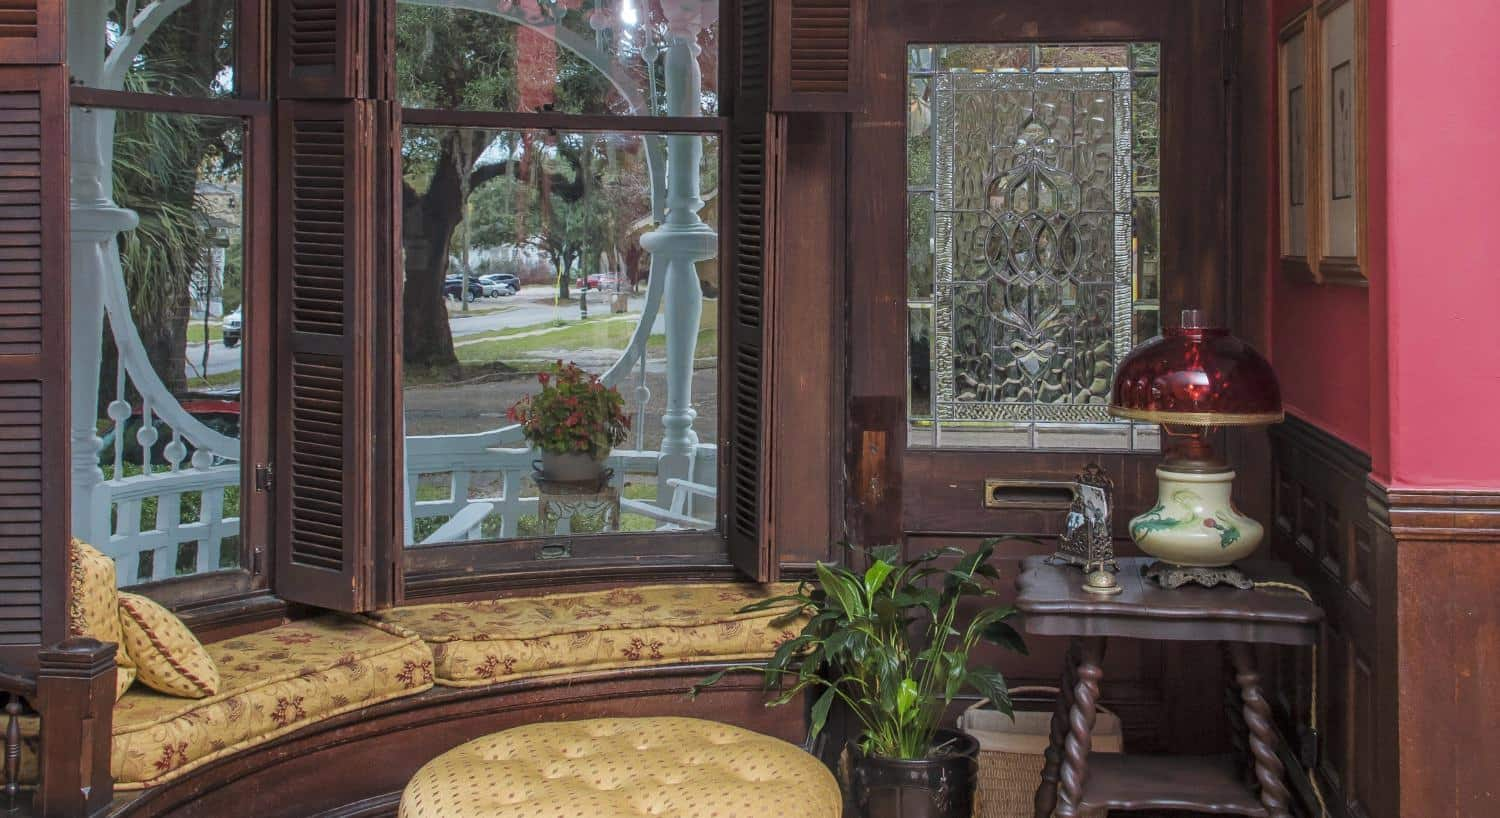 Large picture window with dark brown wooden shutters and gold and burgundy floral upholstered cushions